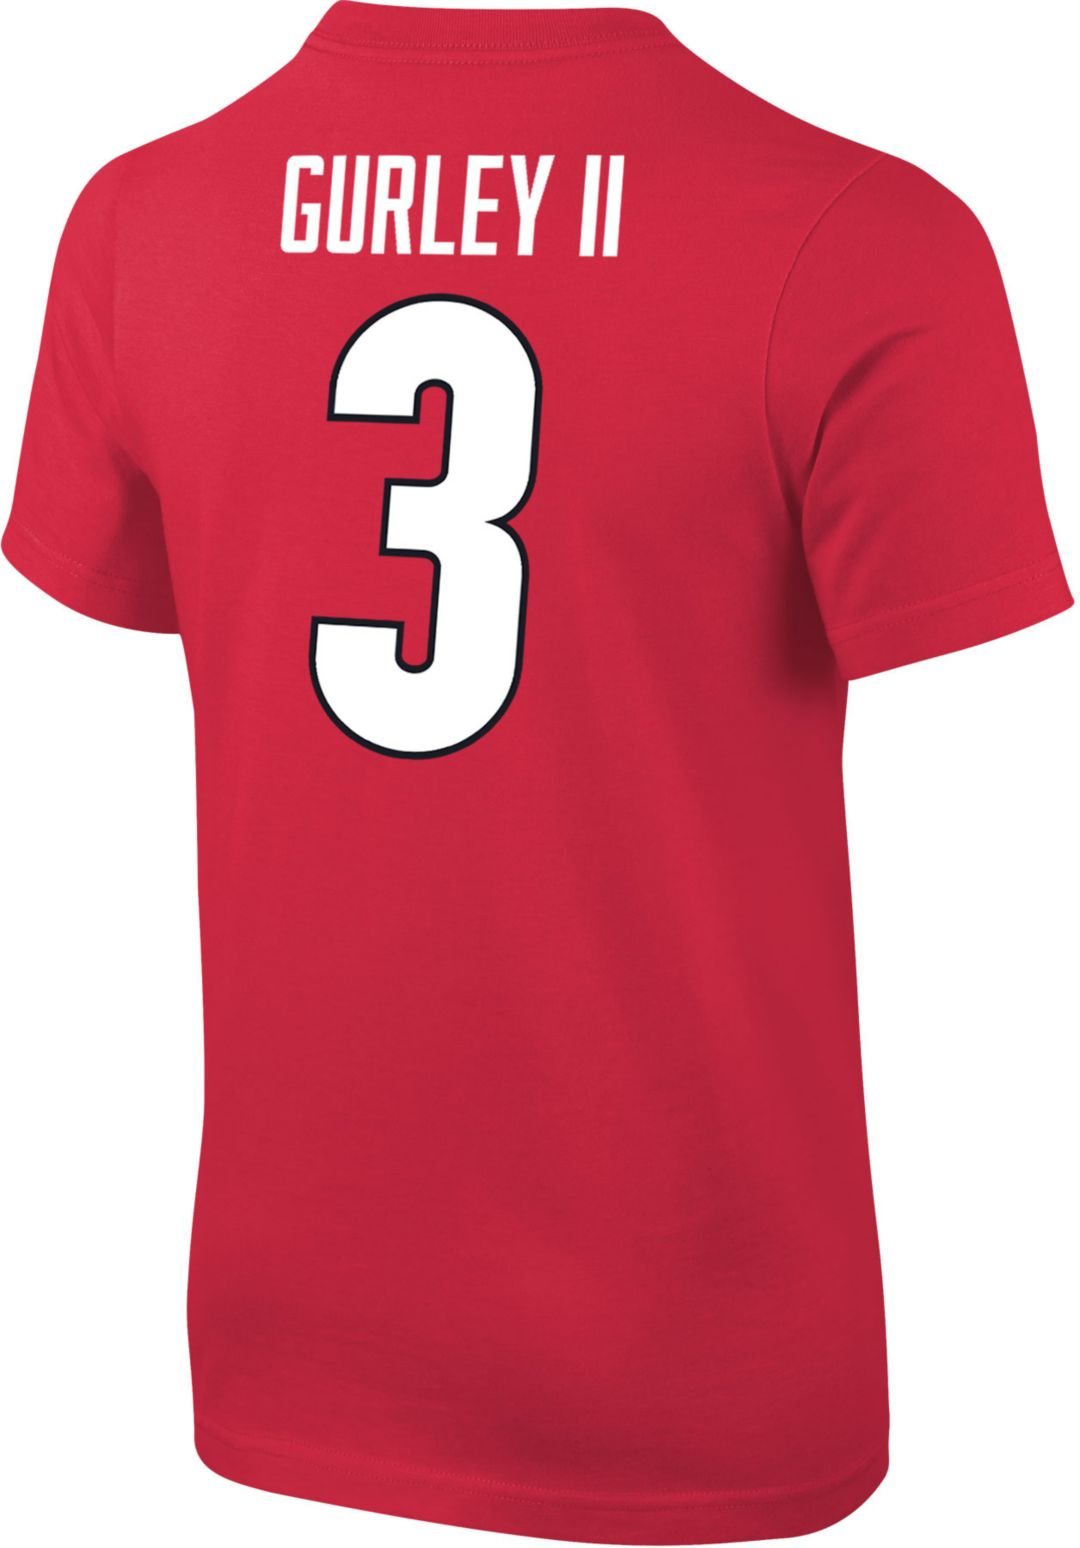 finest selection 3b71b e8f14 Nike Youth Todd Gurley II Georgia Bulldogs #3 Red Cotton Football Jersey  T-Shirt